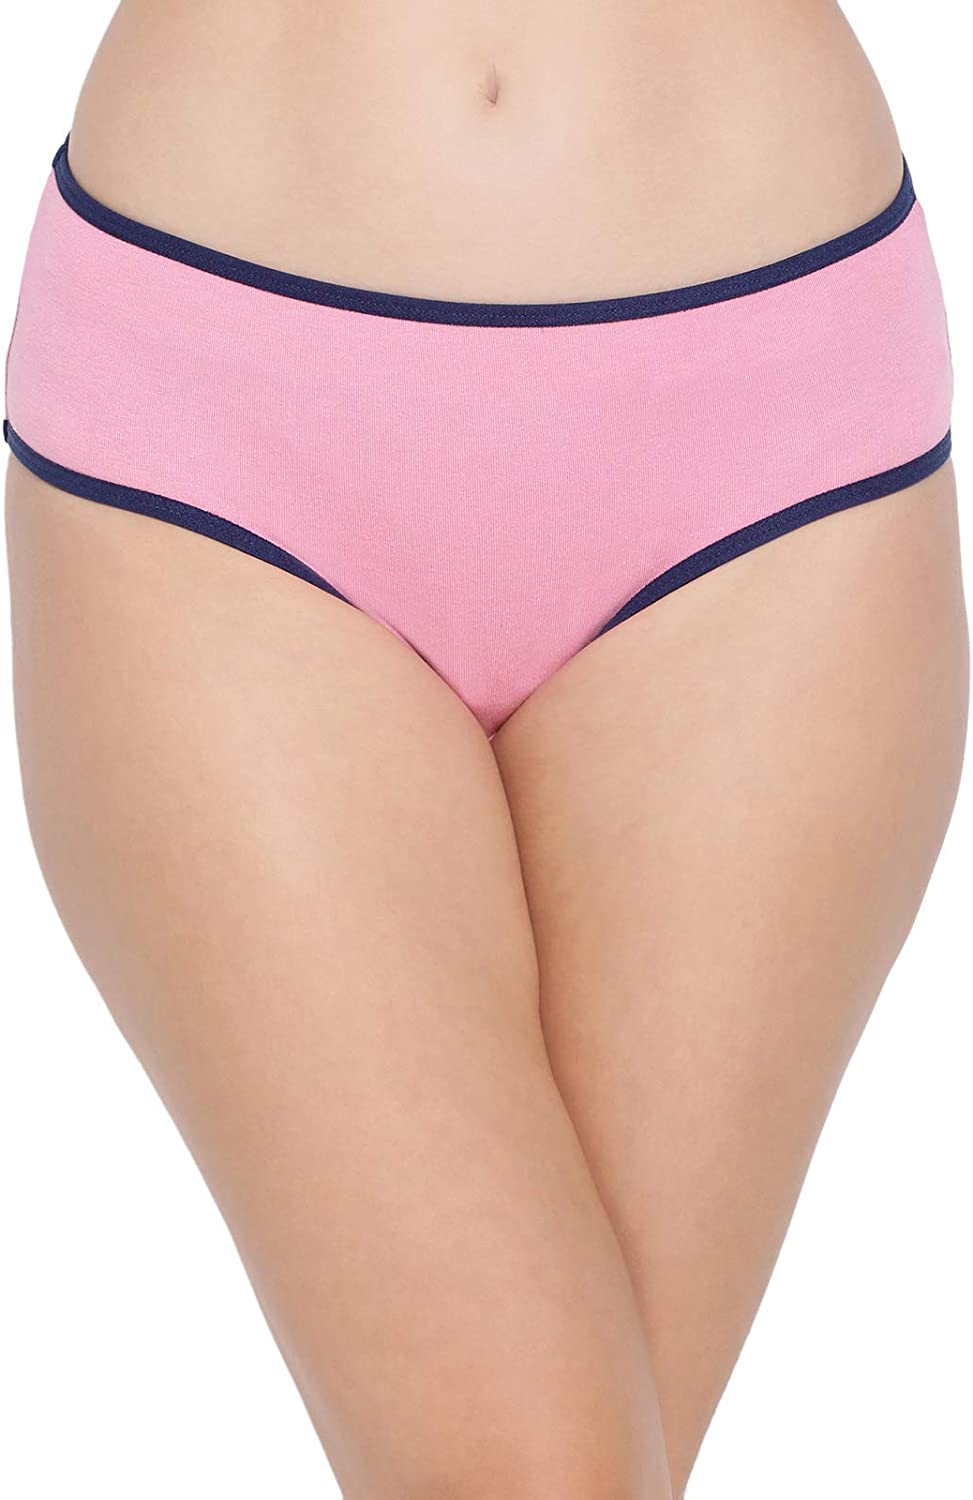 Clovia Womens mid New Opening large release sale products world's highest quality popular Waist Cotton Hipster Brief Panties Underwear